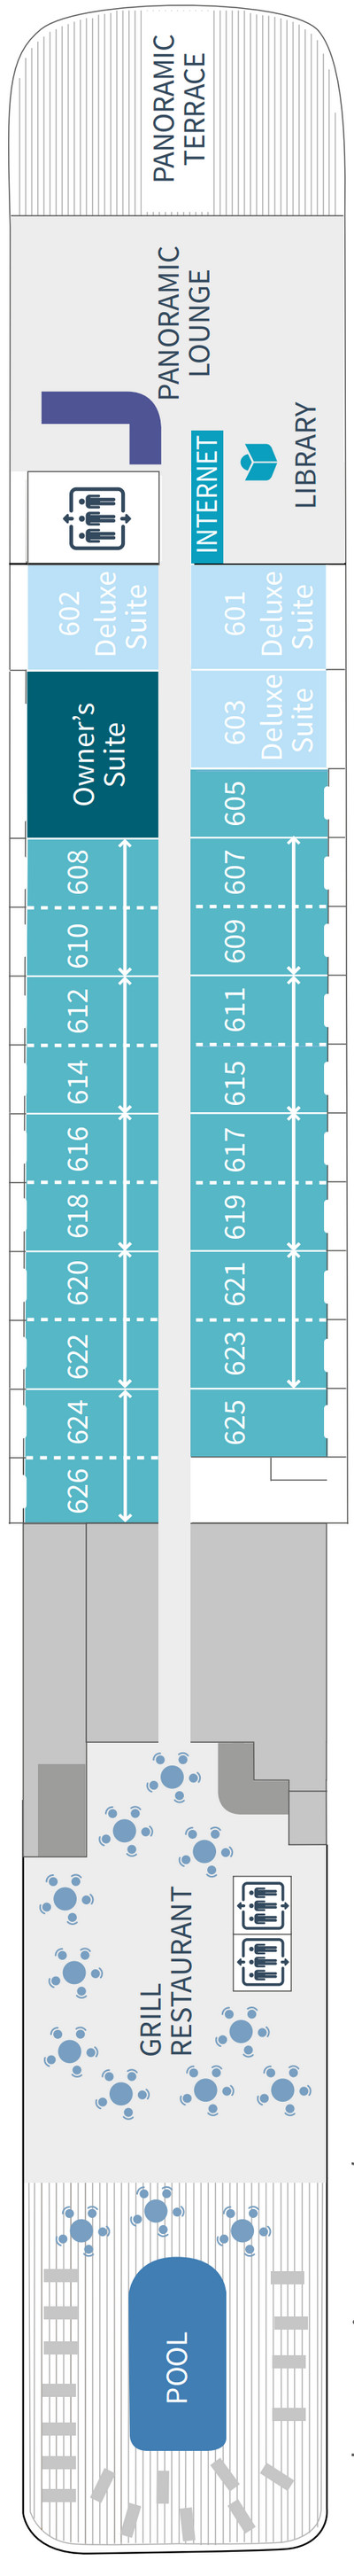 Le Soleal Deck 6 layout